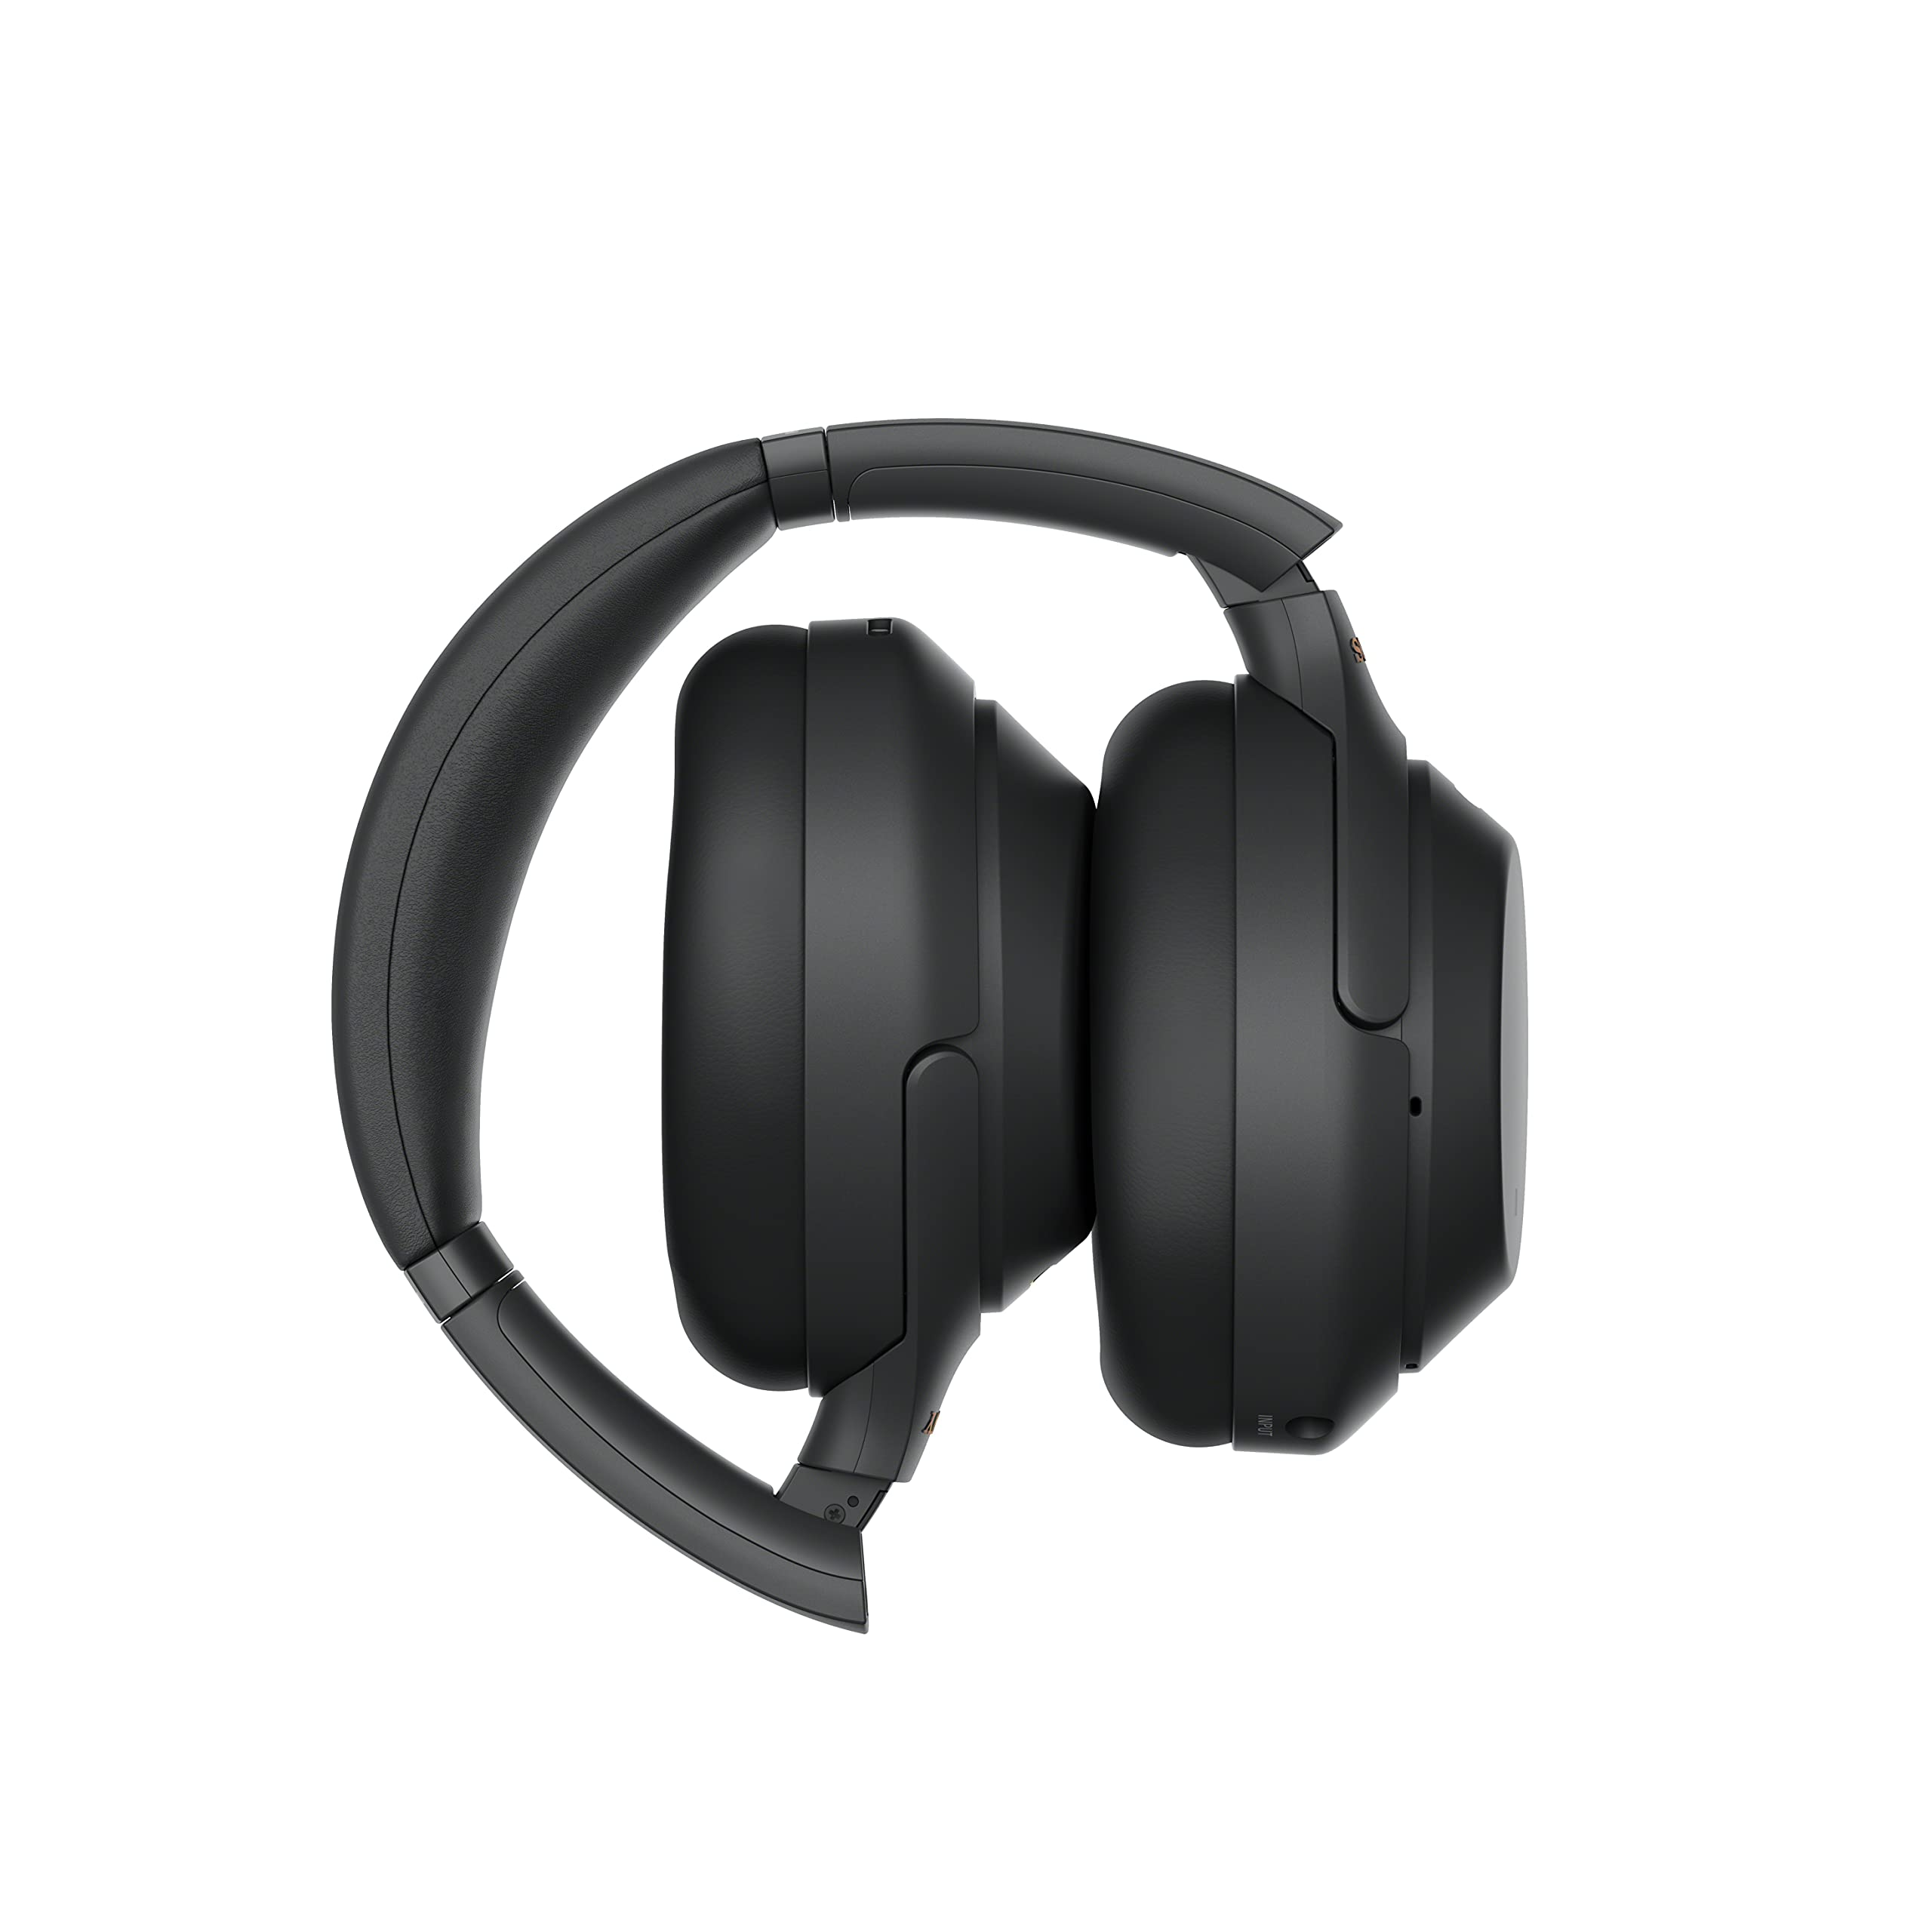 Sony WH-1000XM3 Wireless Noise-Cancelling Bluetooth Over-Ear Headphones with Mic for phone call - Black